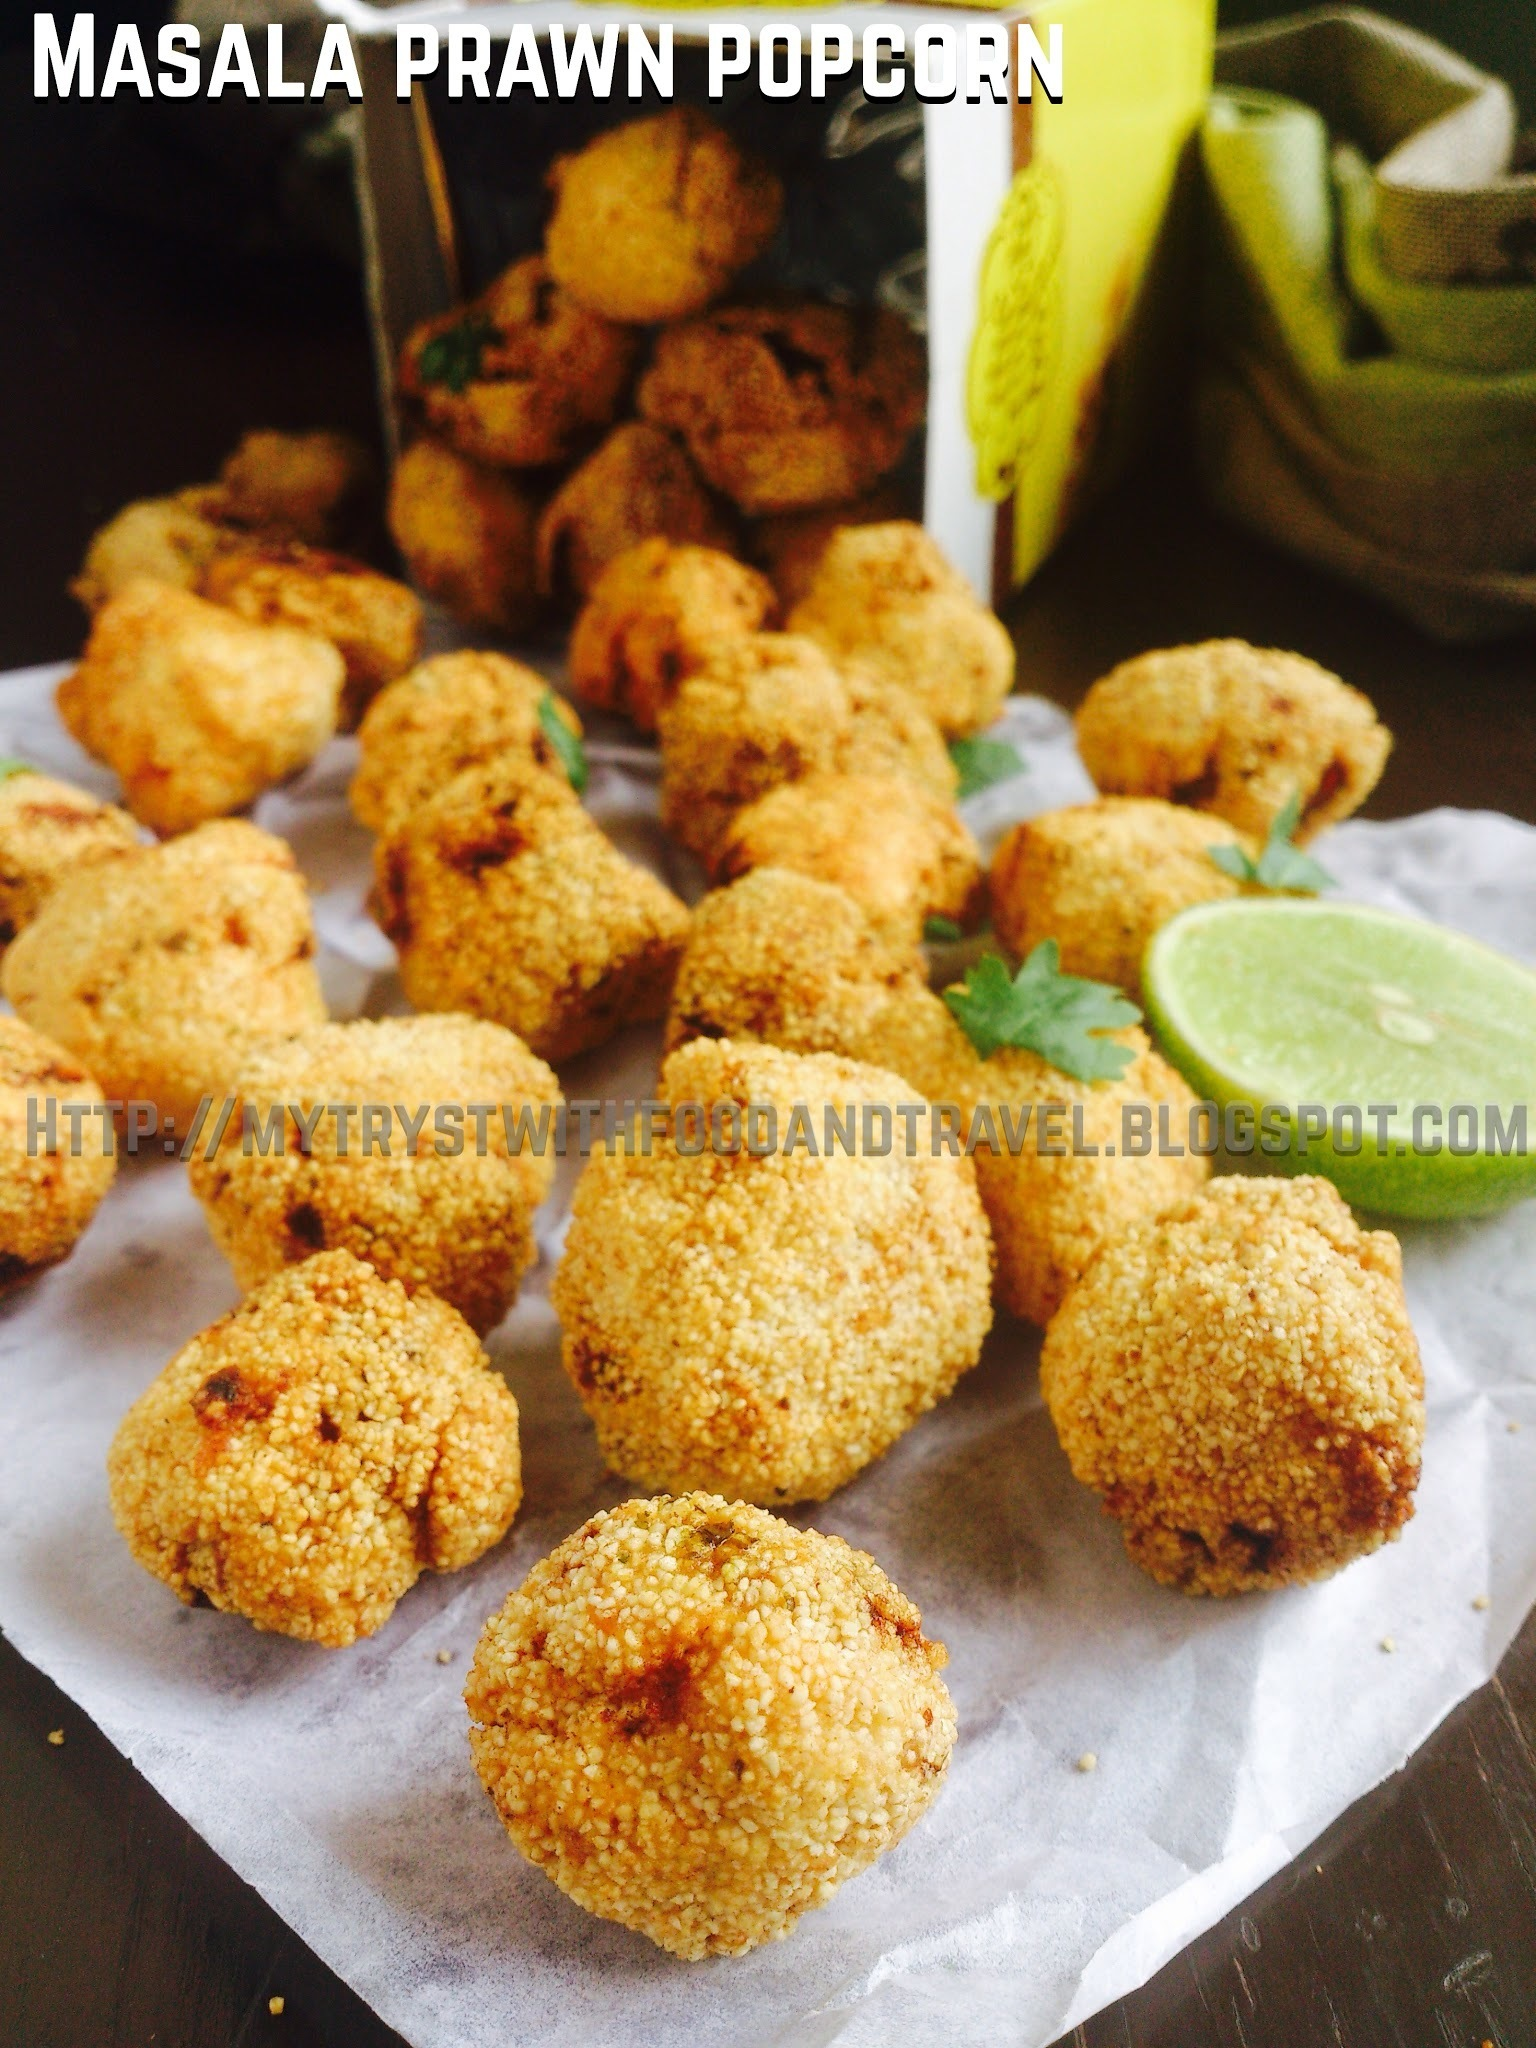 Masala Prawn Popcorn Recipe